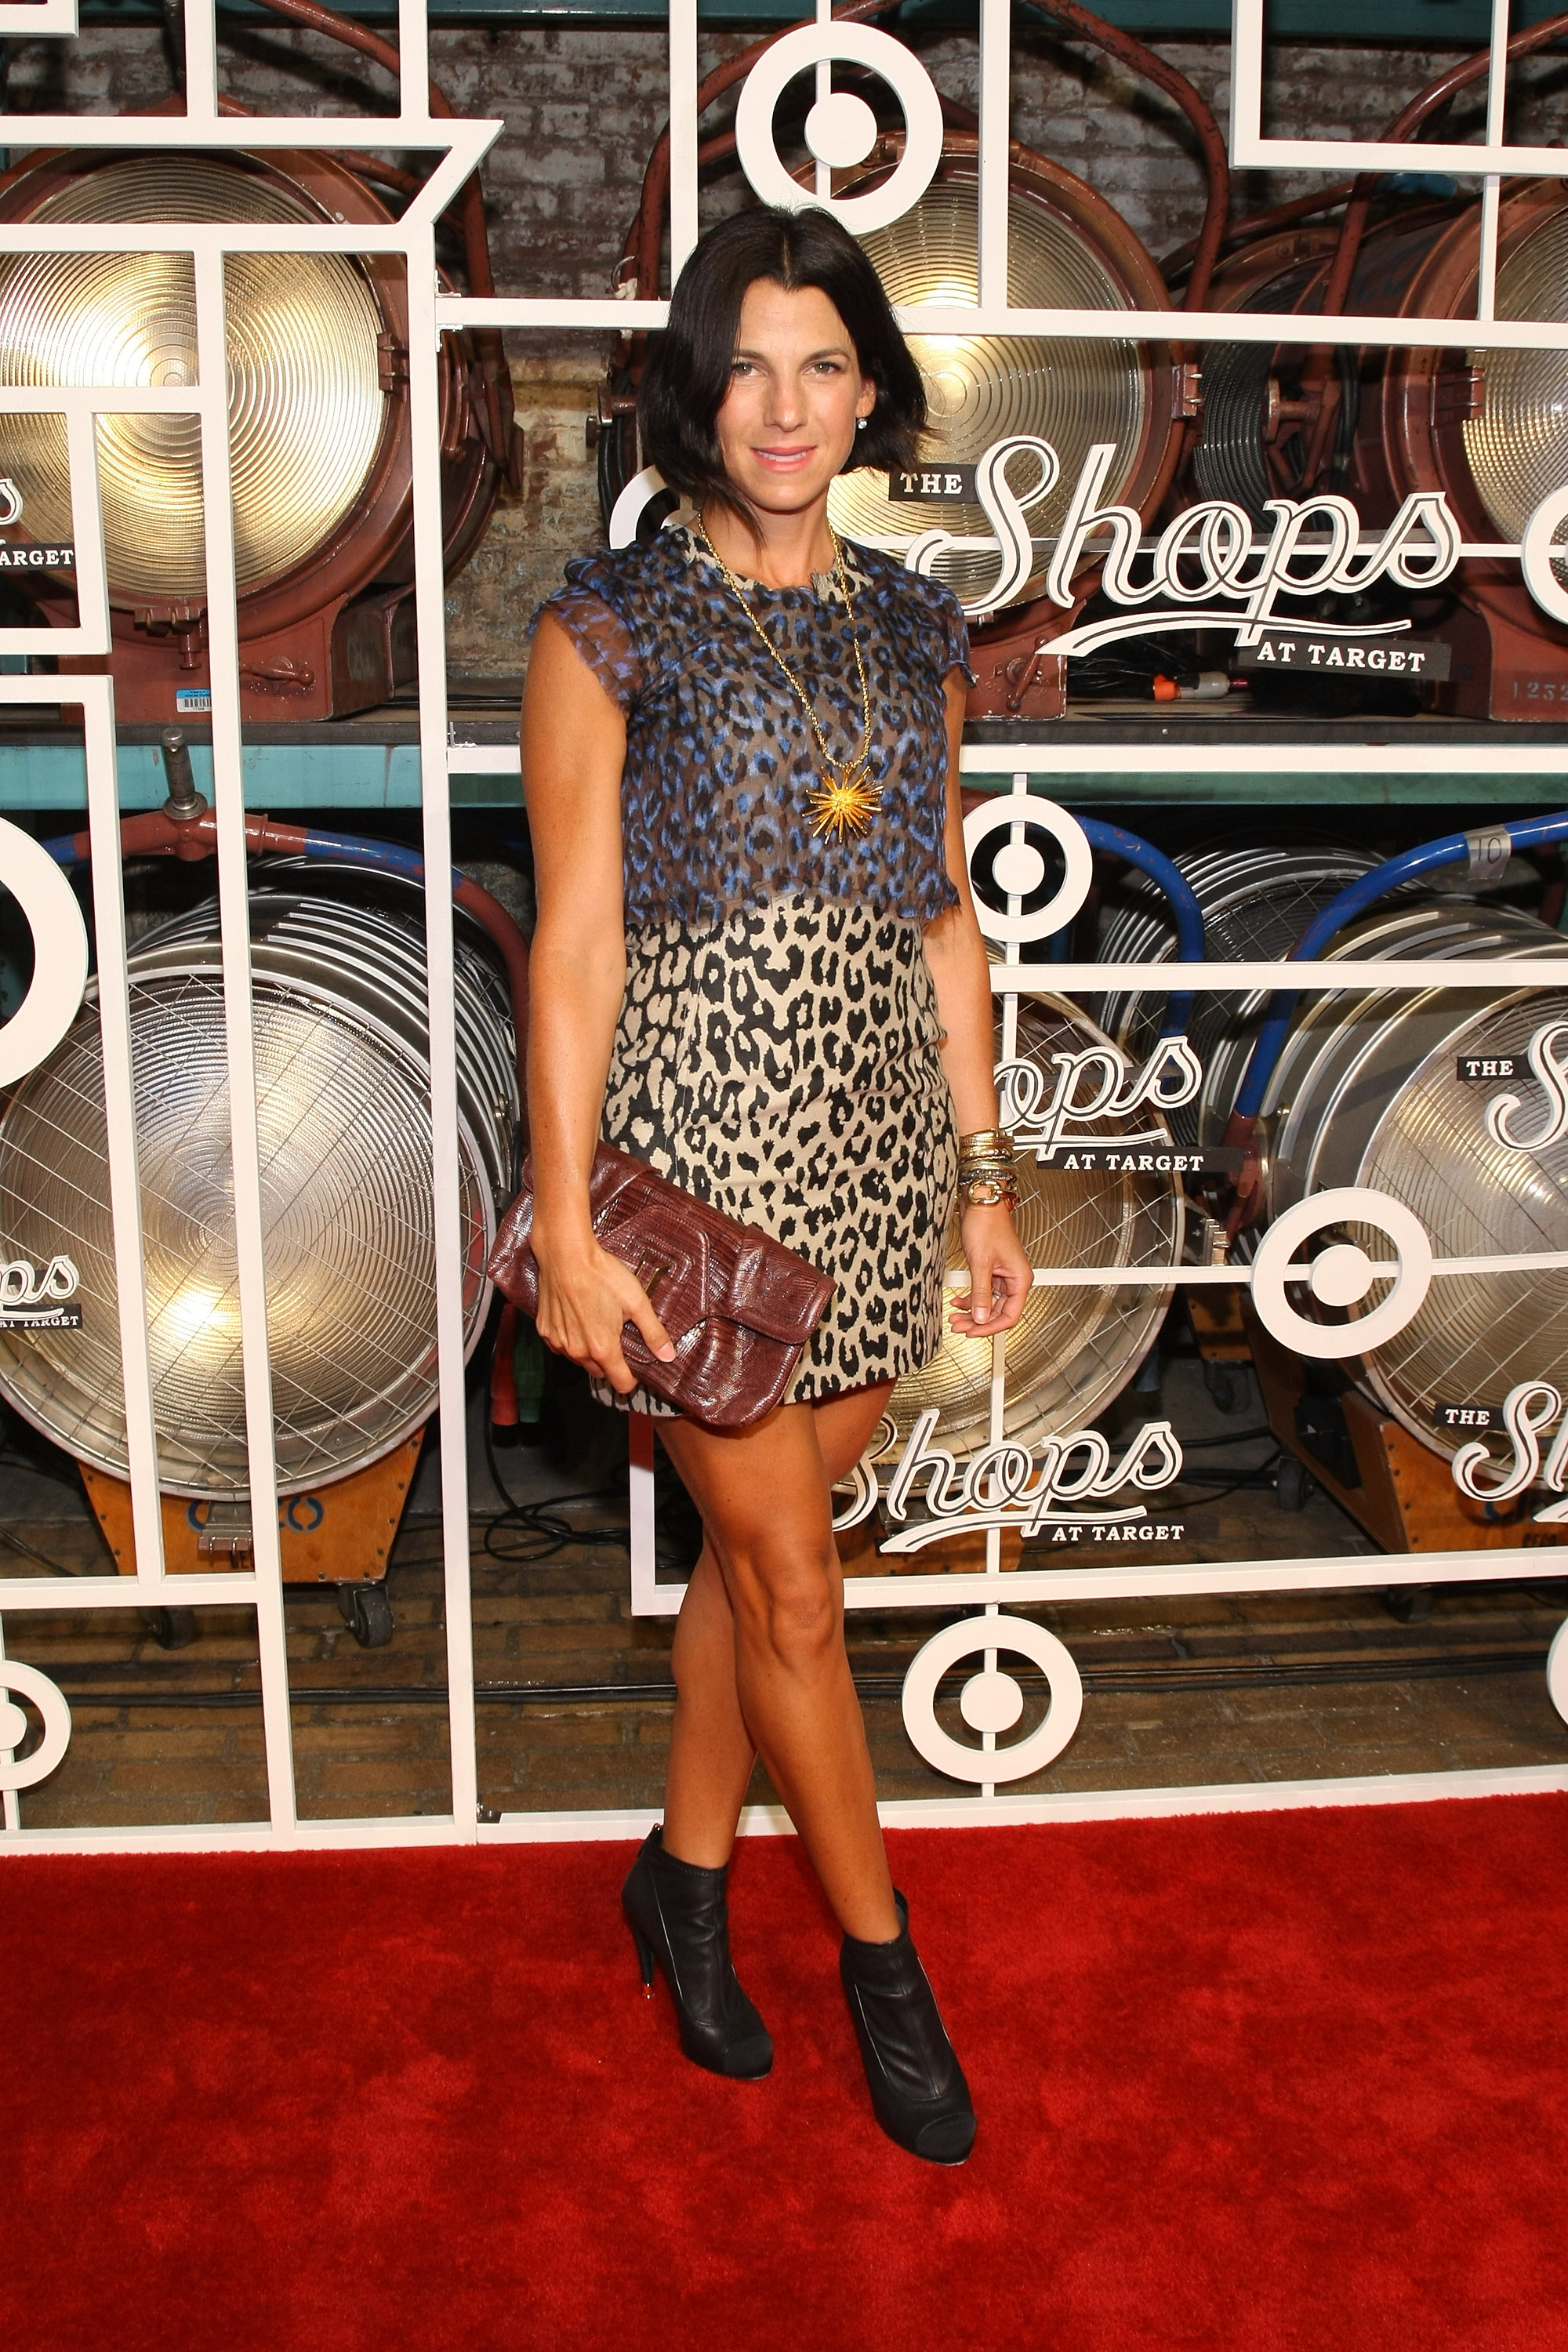 Jessica Seinfeld celebrated the Fall installment of the Shops at Target.